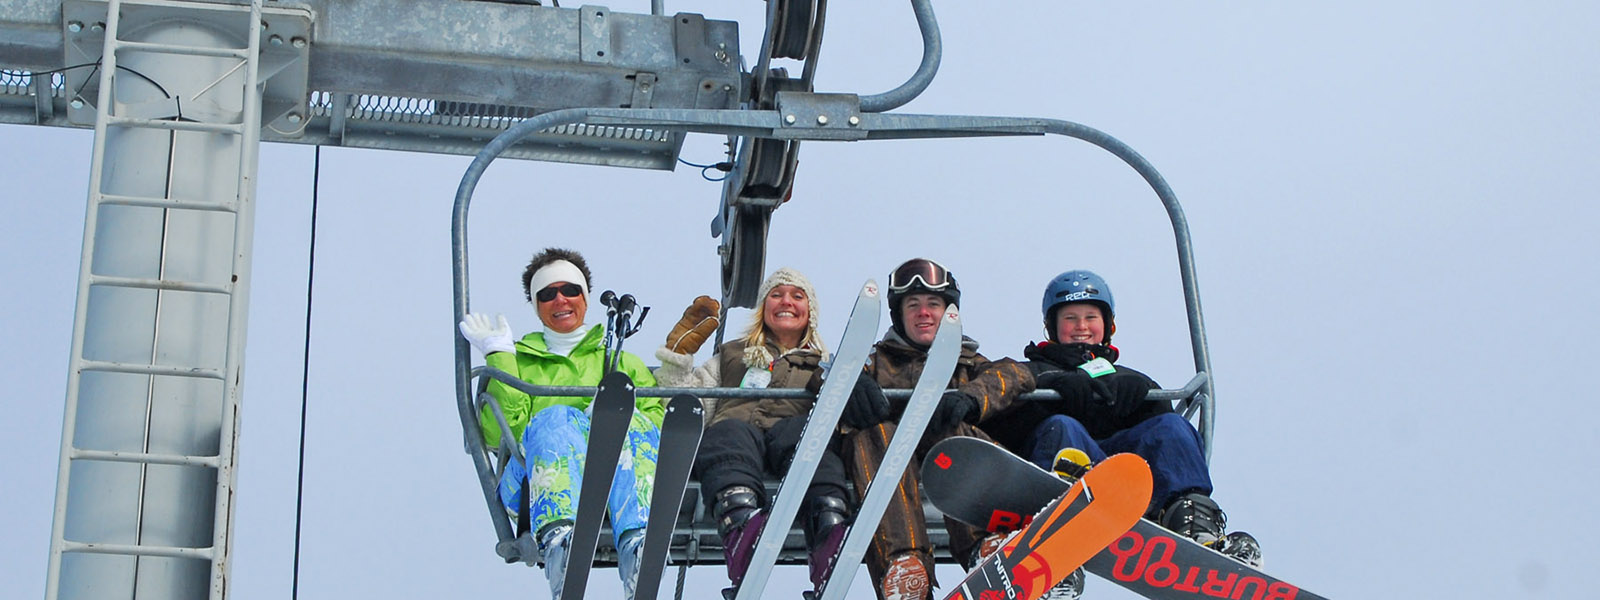 skiers and snowboarder family on chair lift